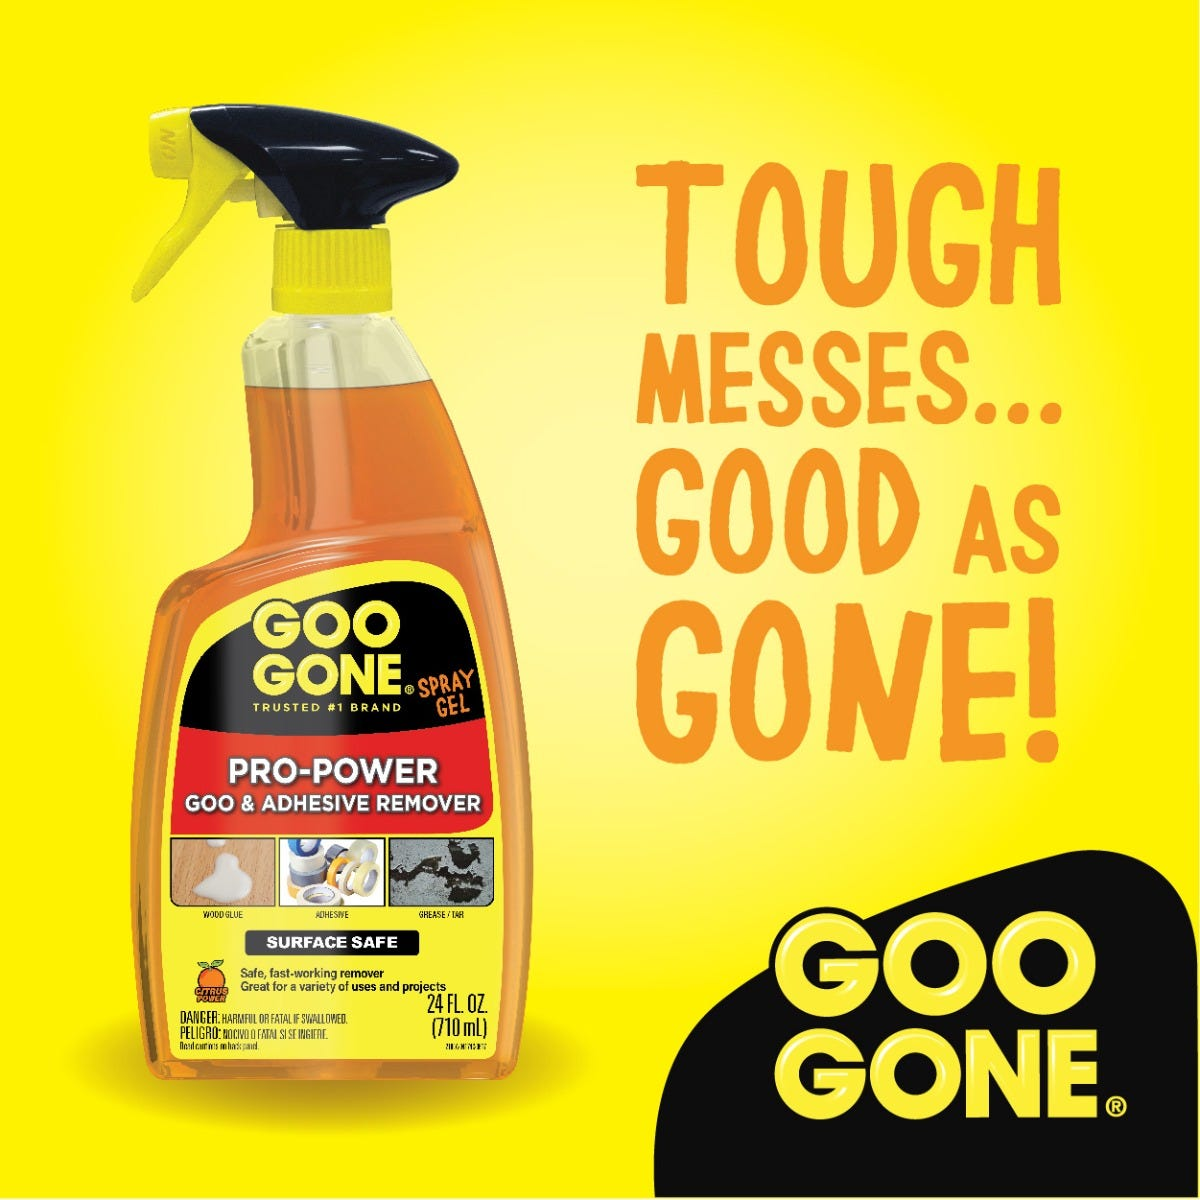 Tough Goo Removal